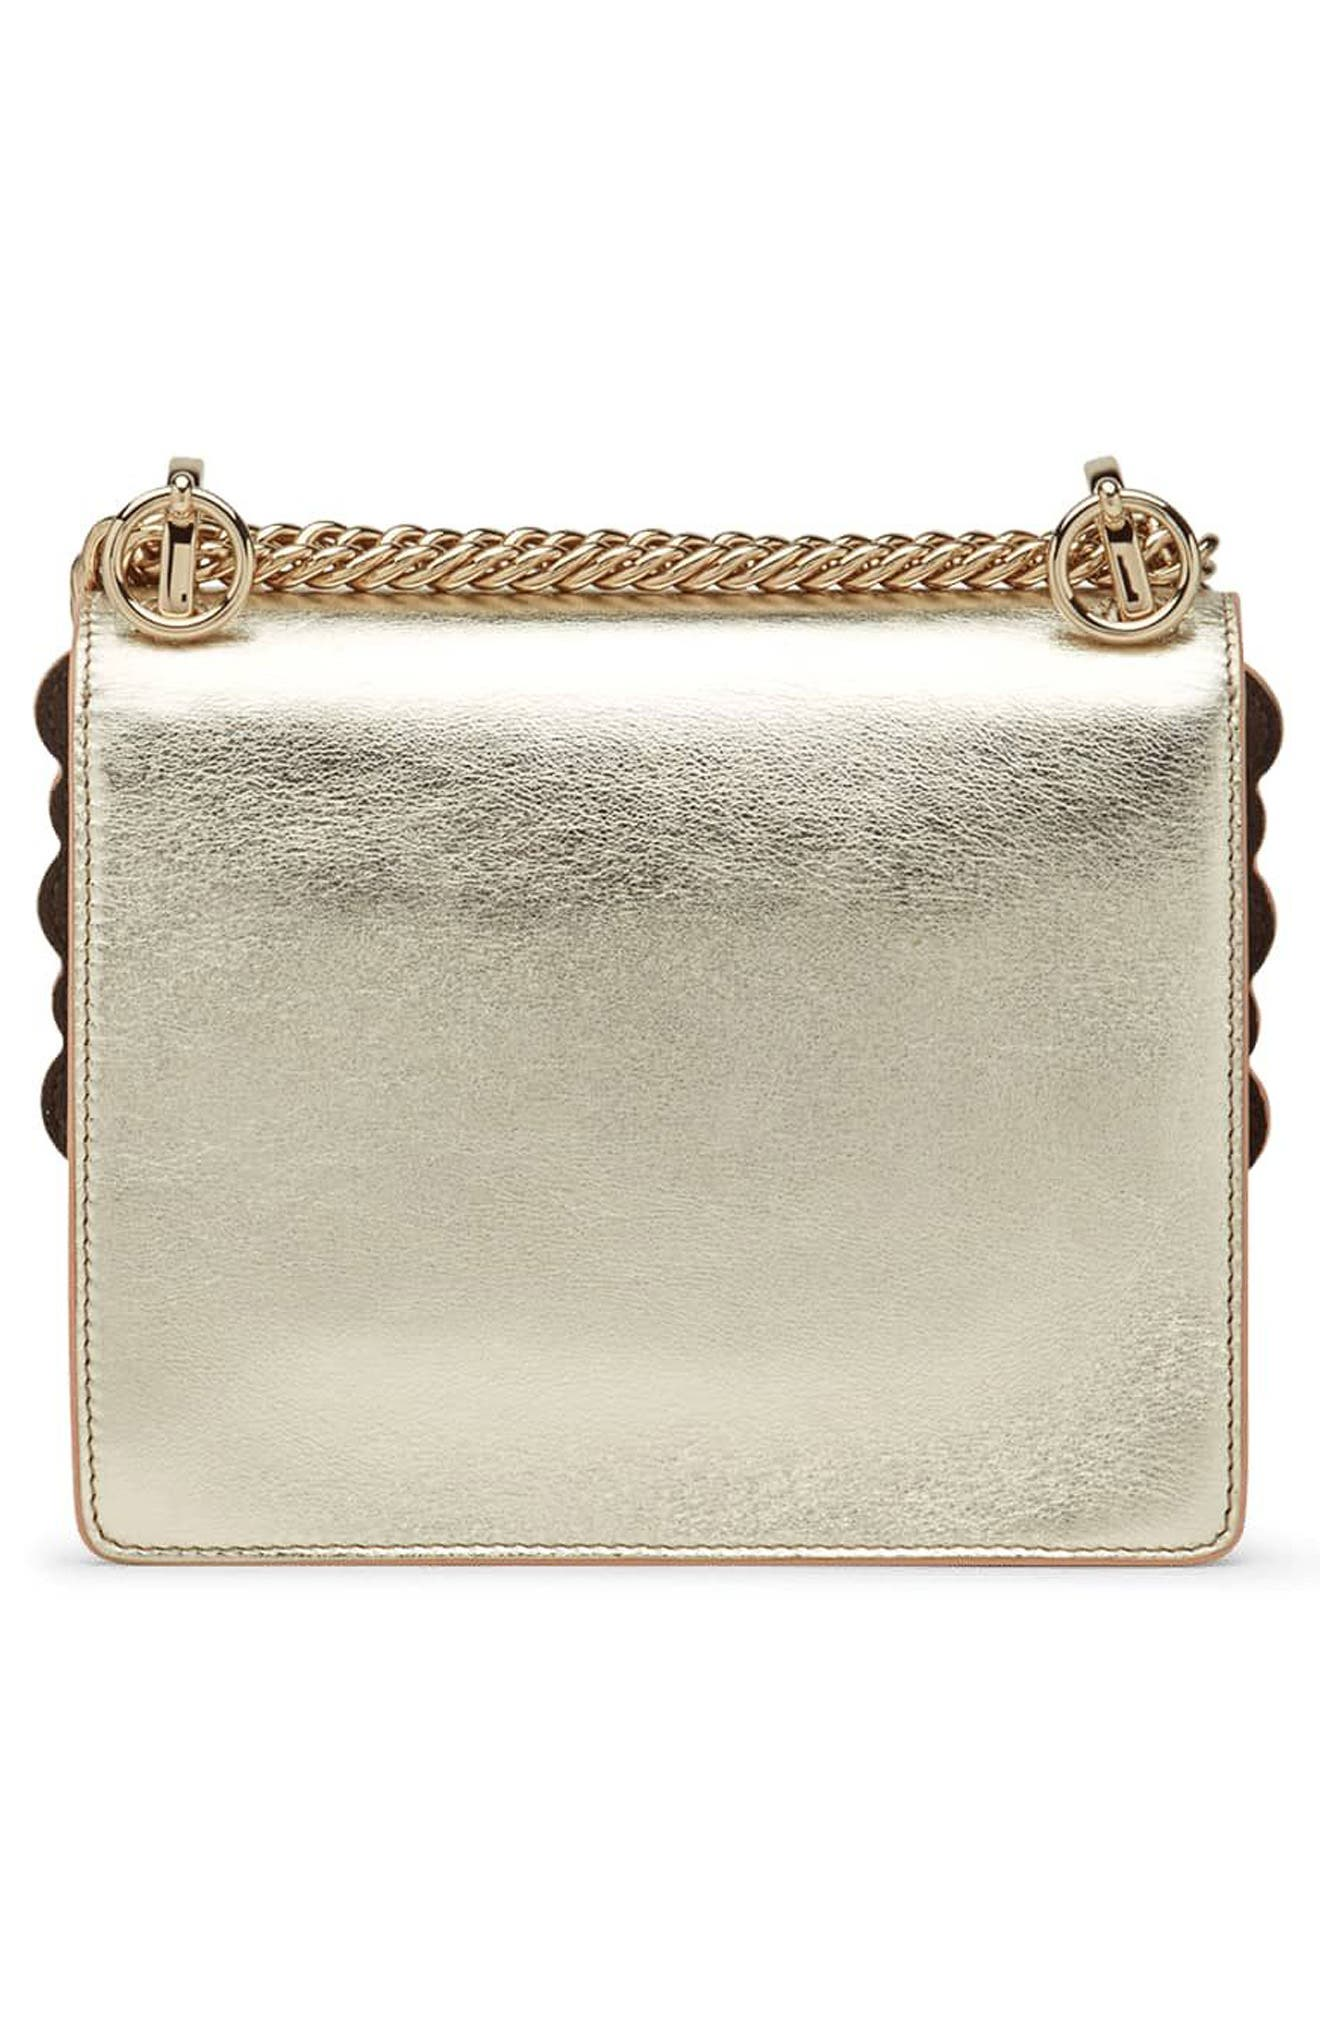 Small Kan I Metallic Leather Shoulder Bag,                             Alternate thumbnail 3, color,                             CHAMPAGNE/ ORO